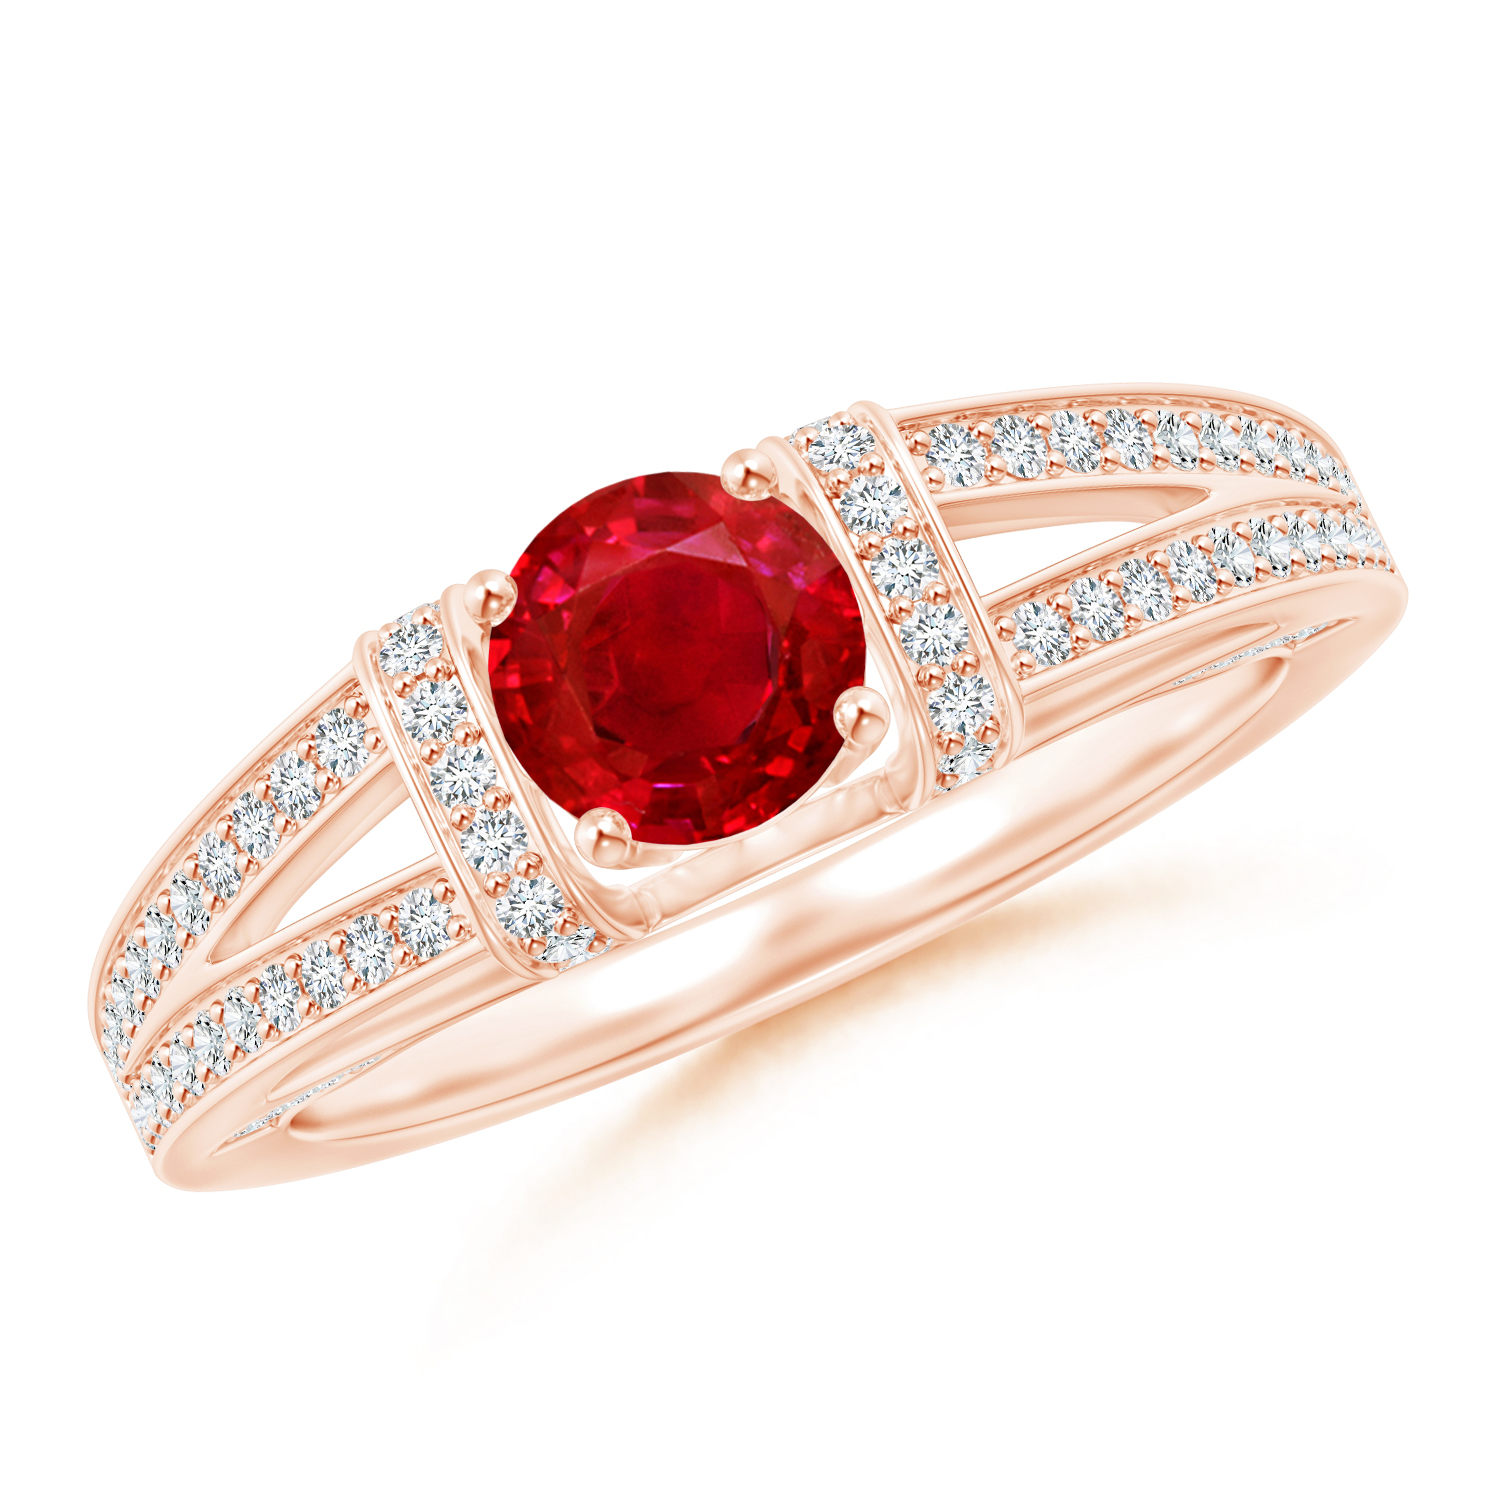 Antique Split Shank Ruby Ring with Diamond Accents - Angara.com